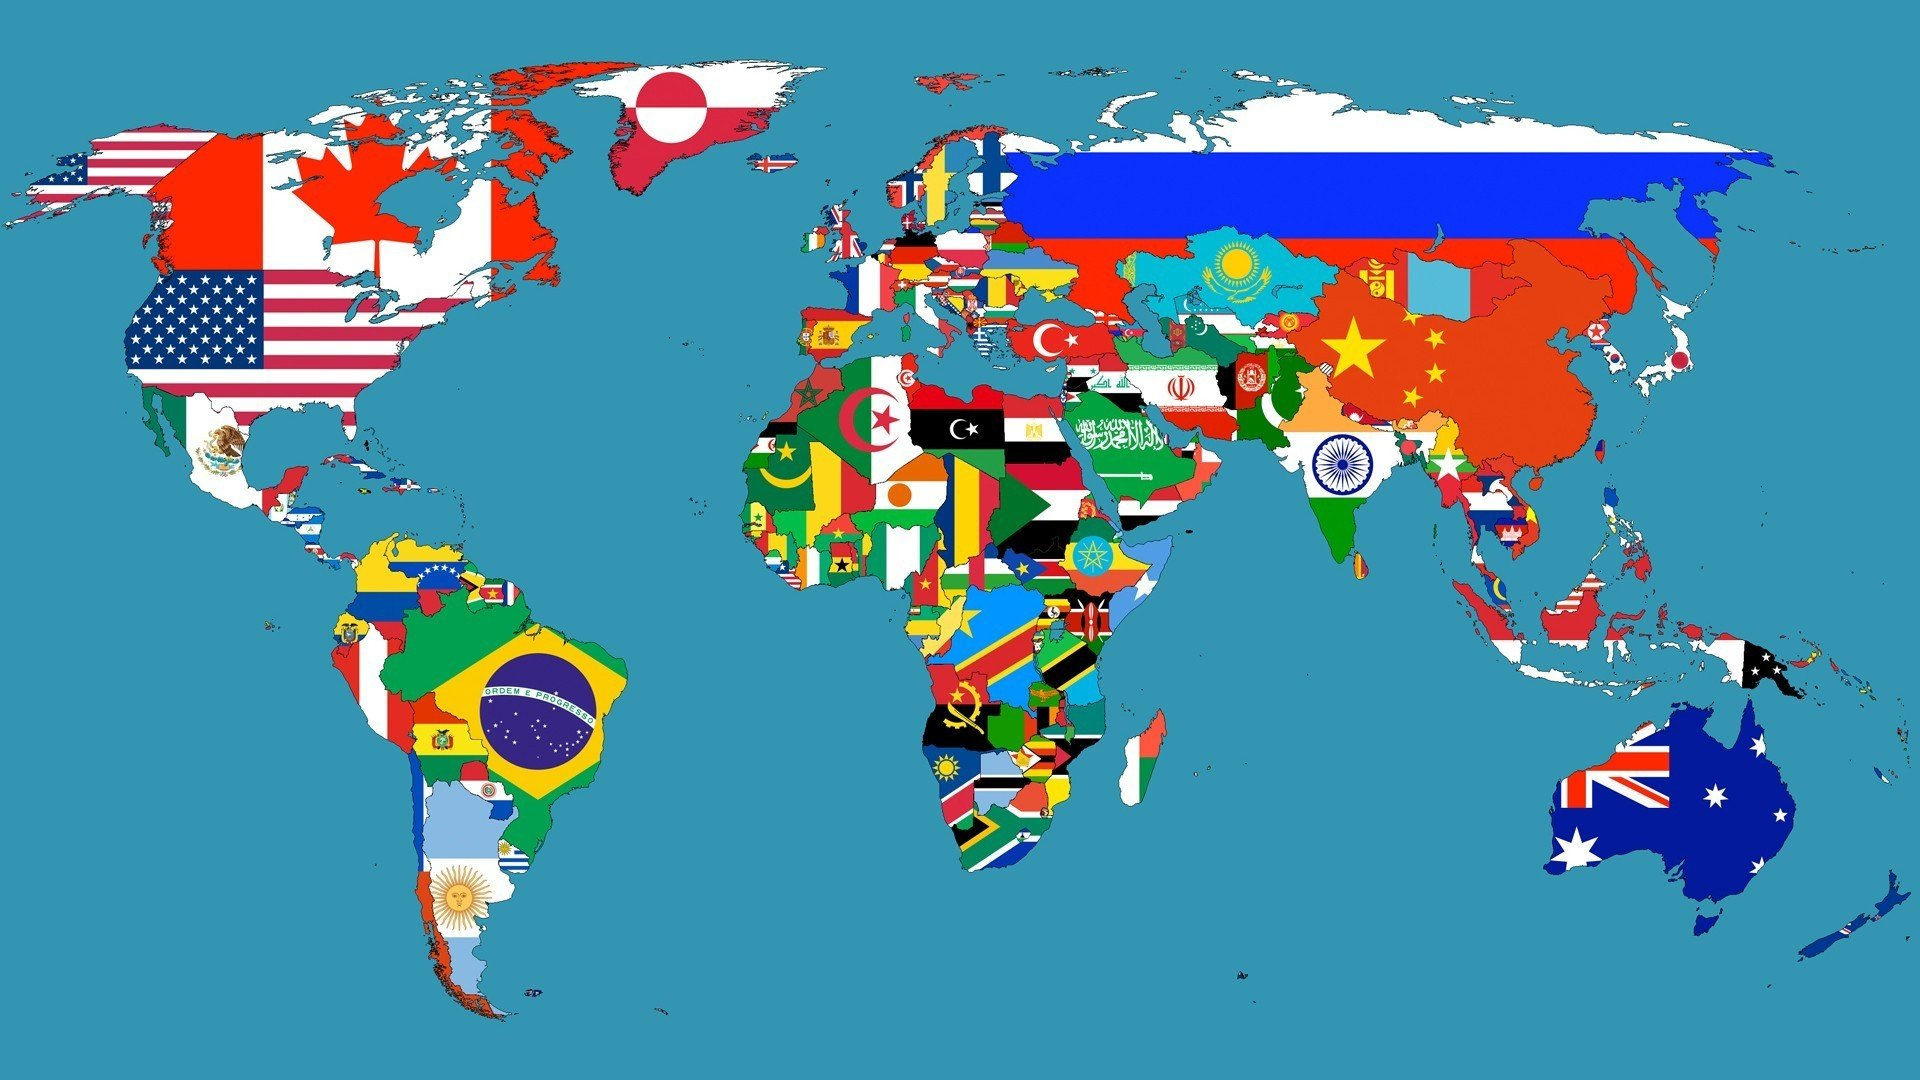 Live world map desktop wallpaper wallpapersafari world map with countries hd wallpapers live hd wallpaper hq pictures 1920x1080 gumiabroncs Images